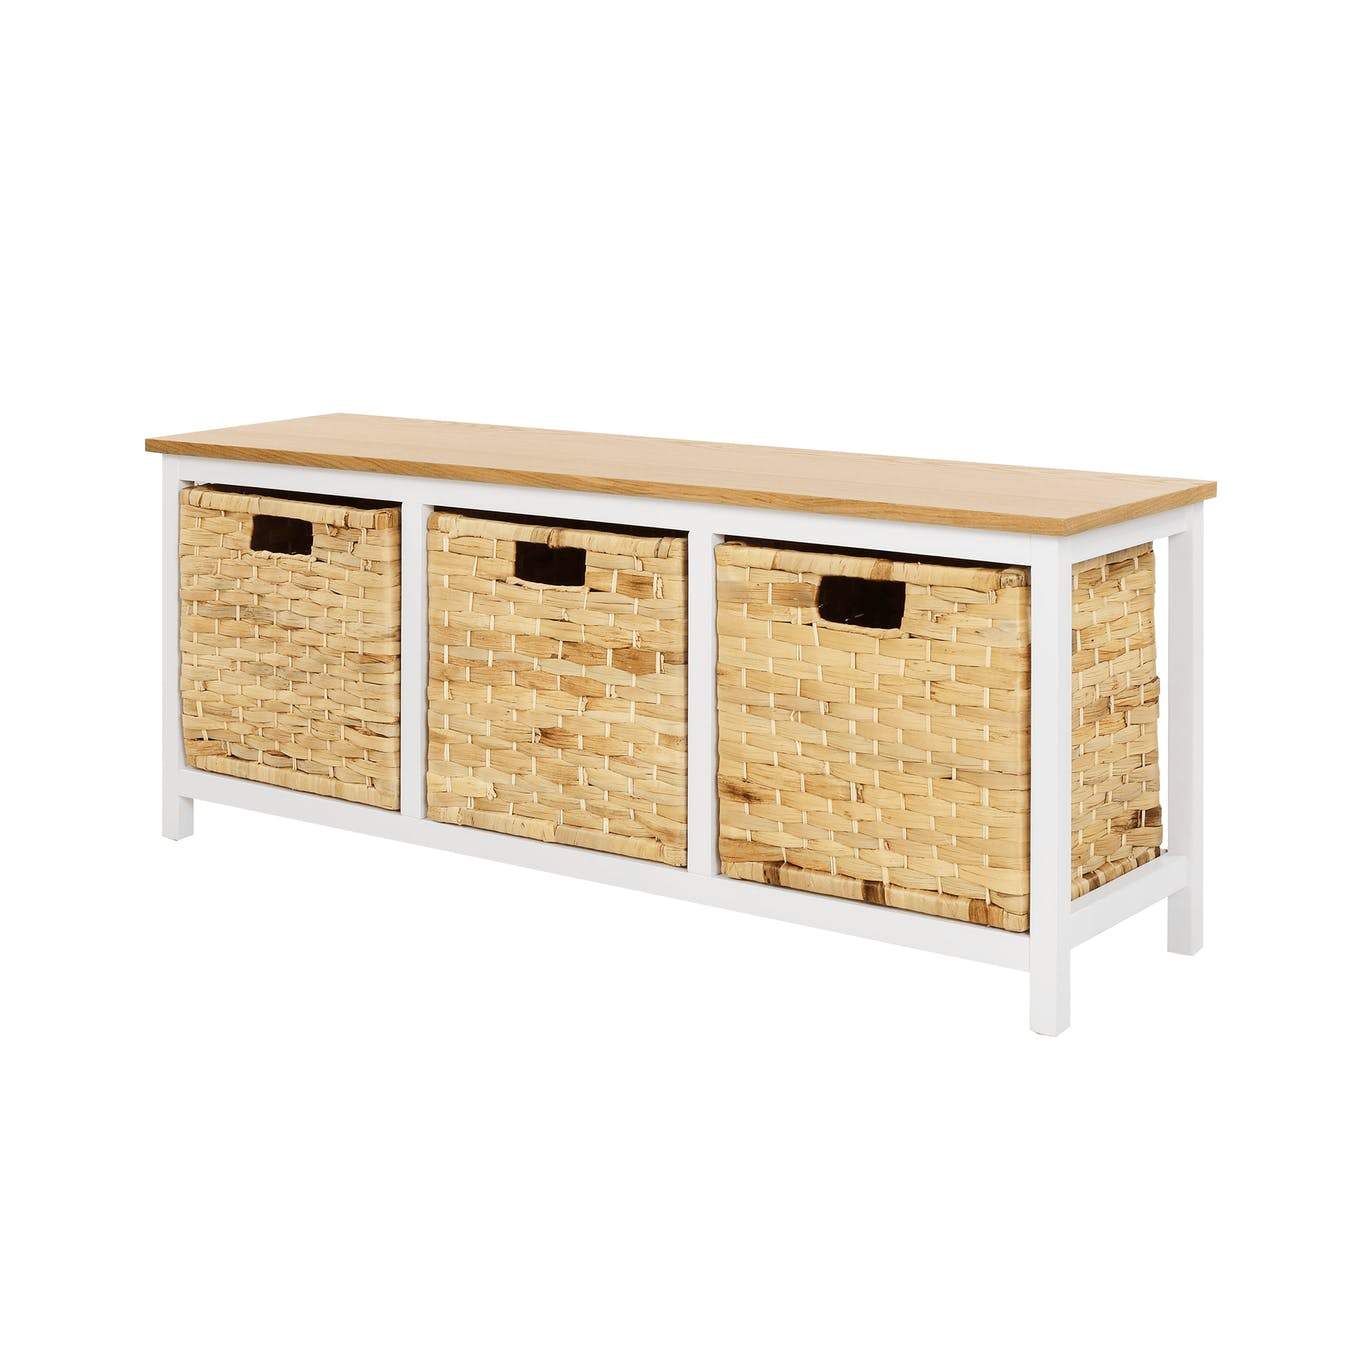 Entryway bench with 3 storage compartments underneath the seating area